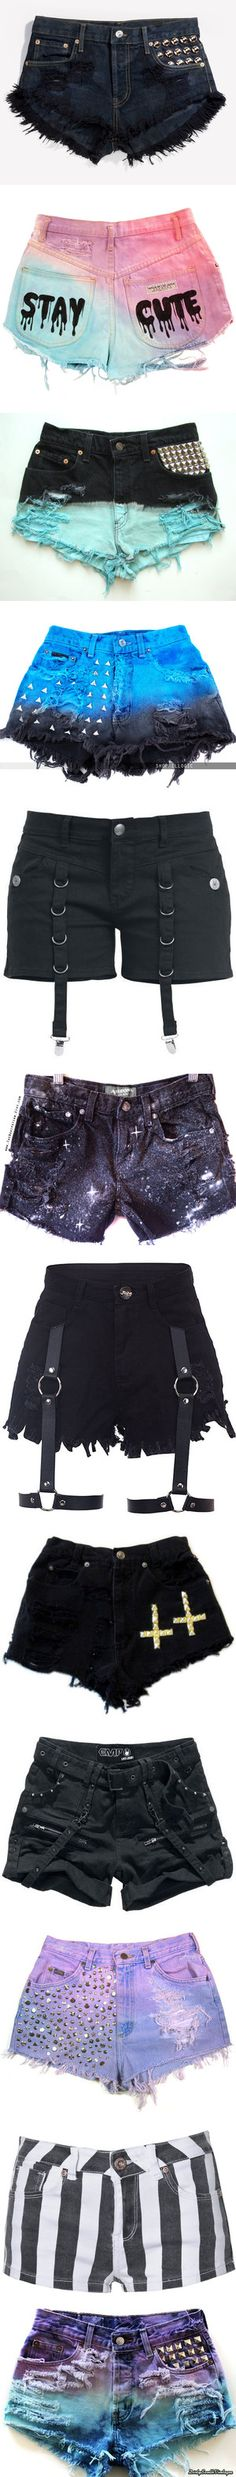 pastel goth shorts by pastel-goth-for-life on Polyvore featuring women's fashion, shorts, bottoms, pants, distressed shorts, ripped studded shorts, destroyed shorts, vintage studded shorts, vintage distressed shorts and short